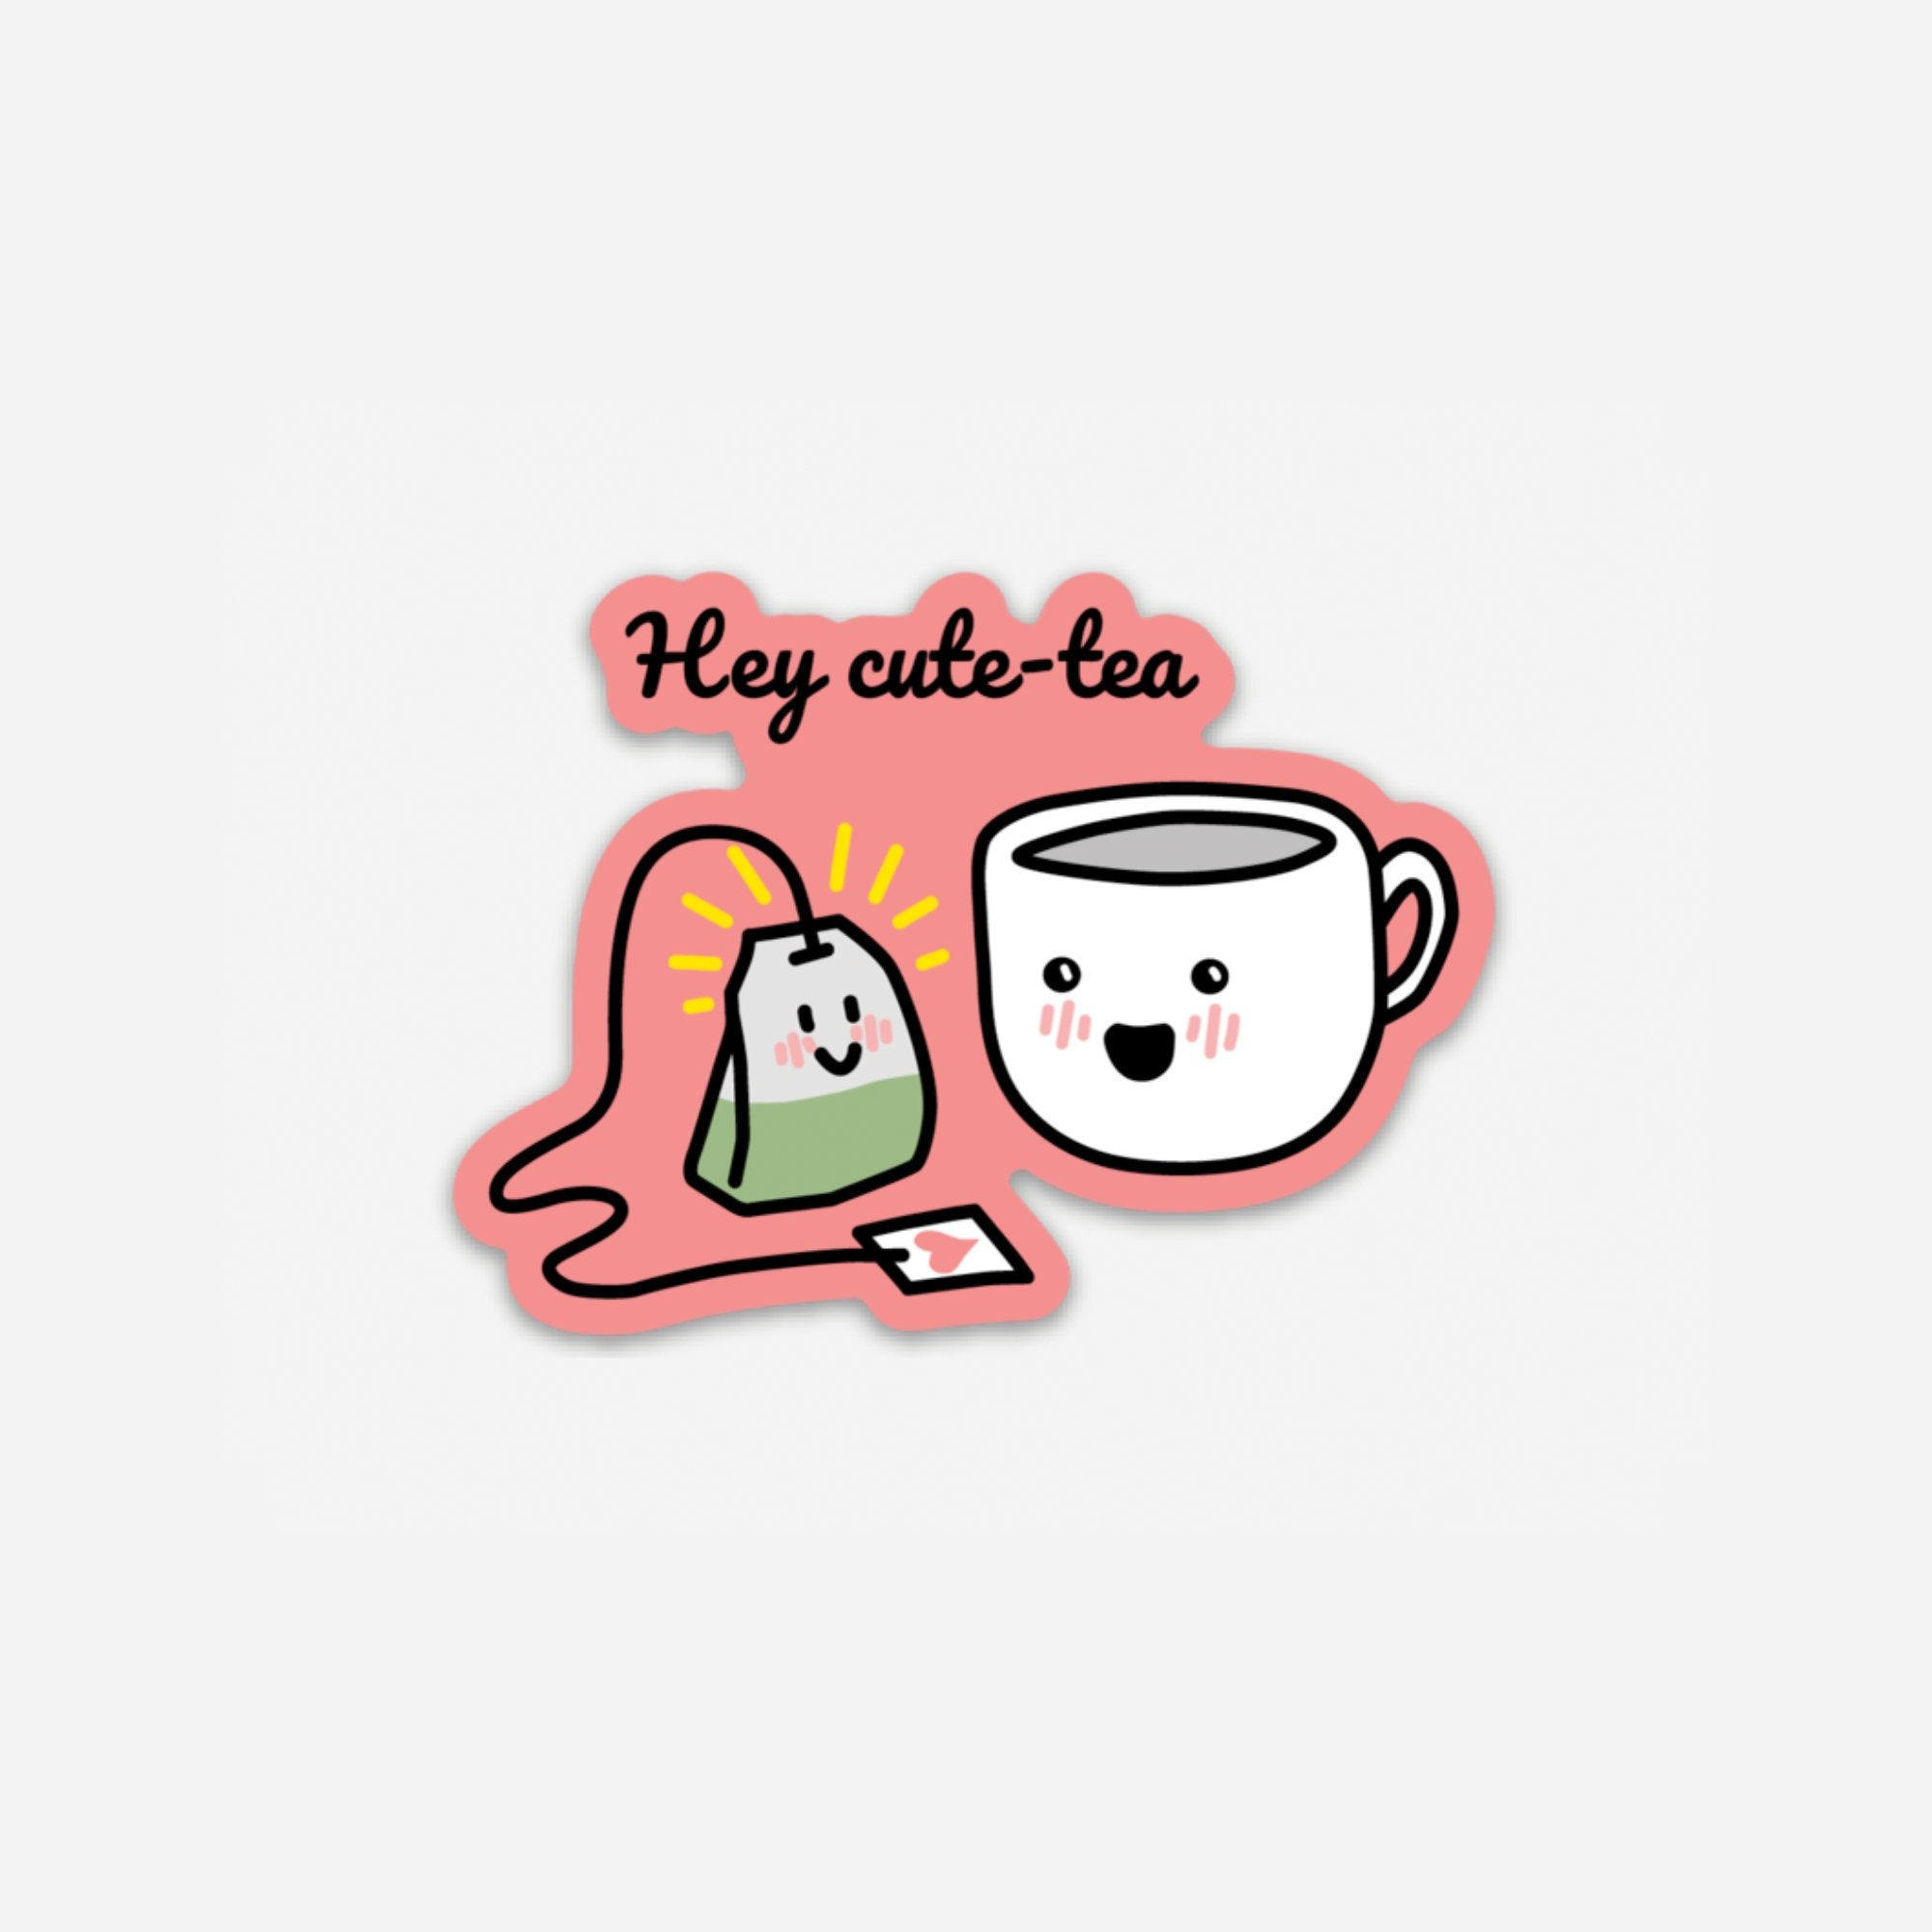 Punny Cute Hey Cute-Tea Asian Sticker | Vinyl Sticker | Die Cut Sticker